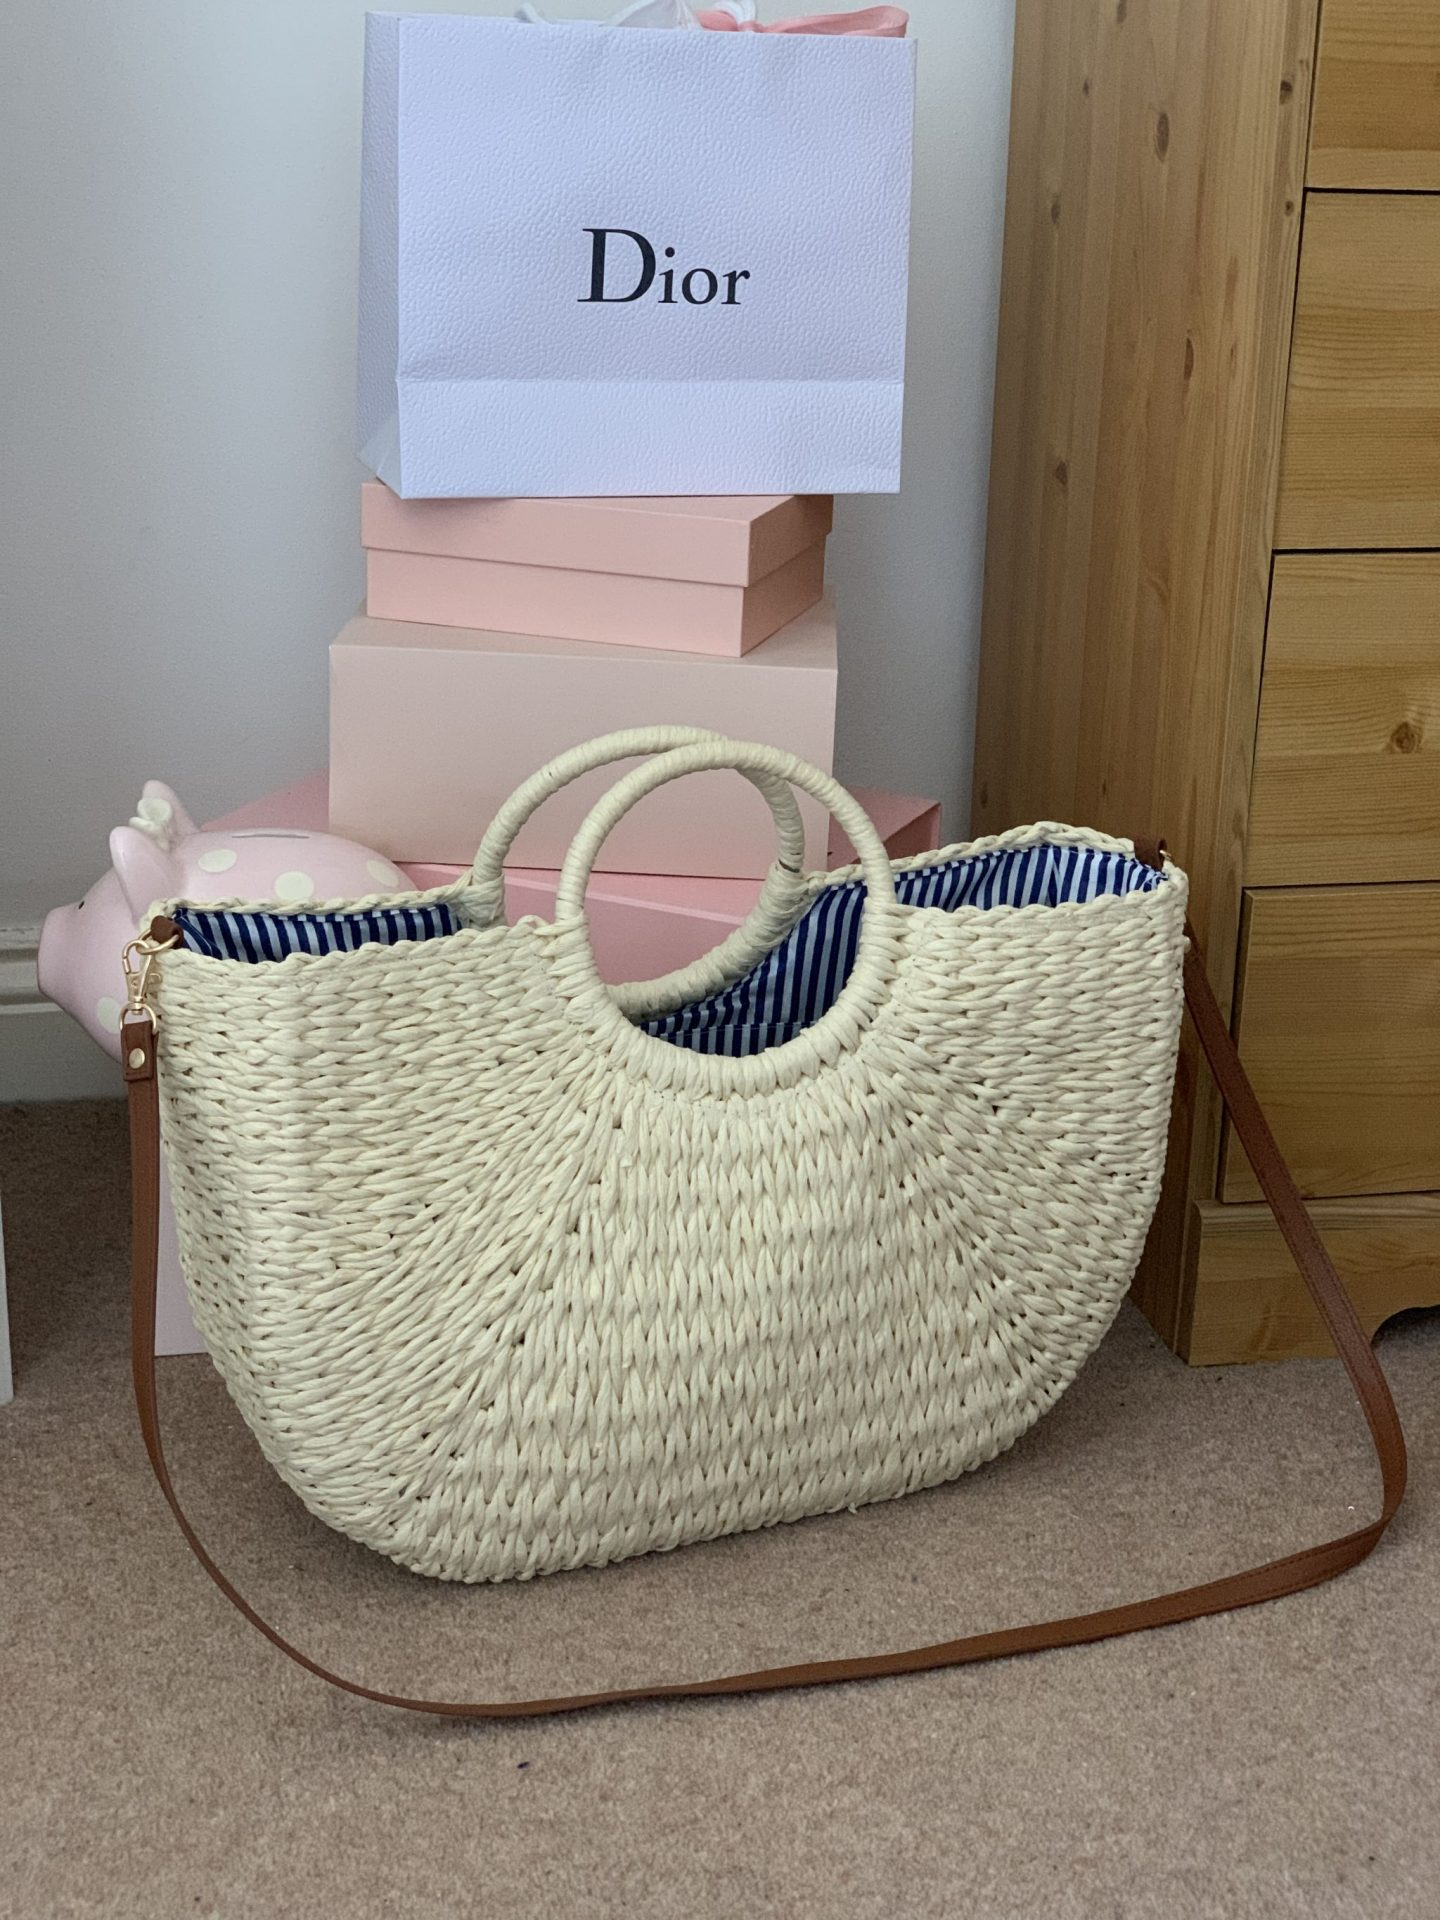 Affordable summer bags Primark Bag WhatLauraLoves